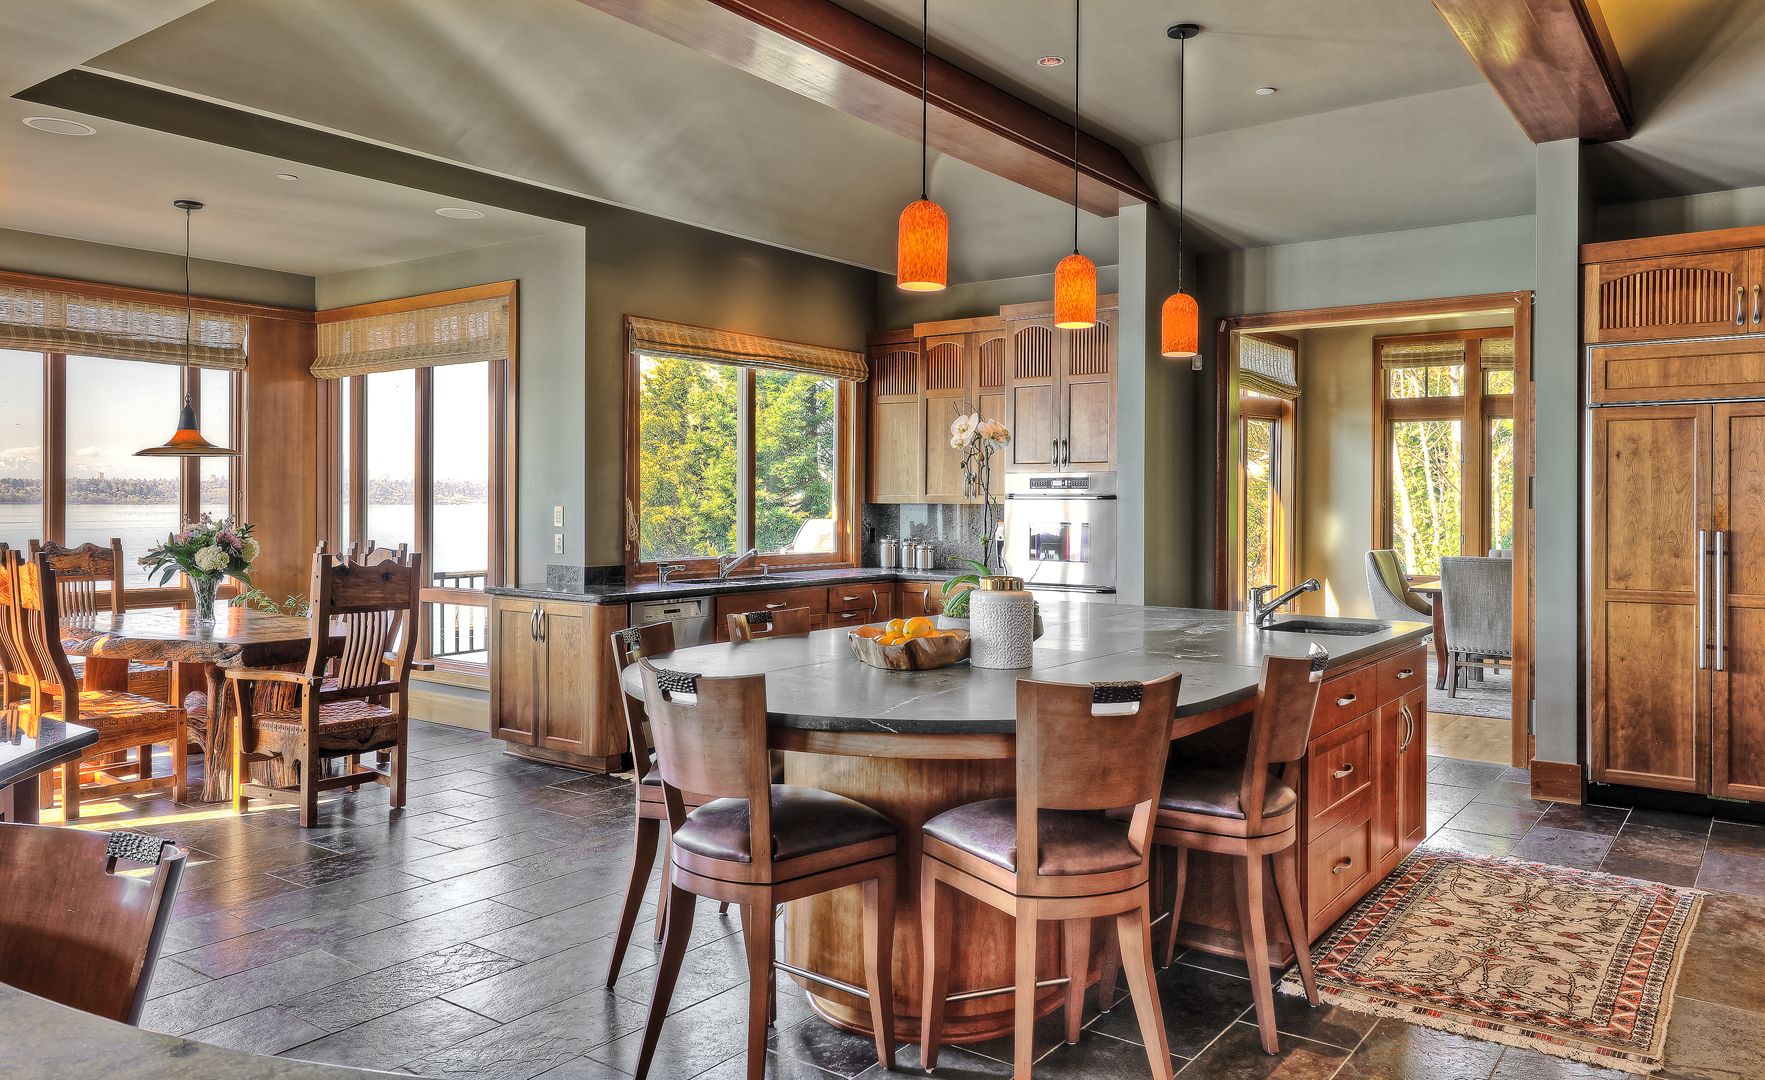 Seattle residential architects TCA designed this high end kitchen and dining room for our clients on Mercer Island on Lake Washington